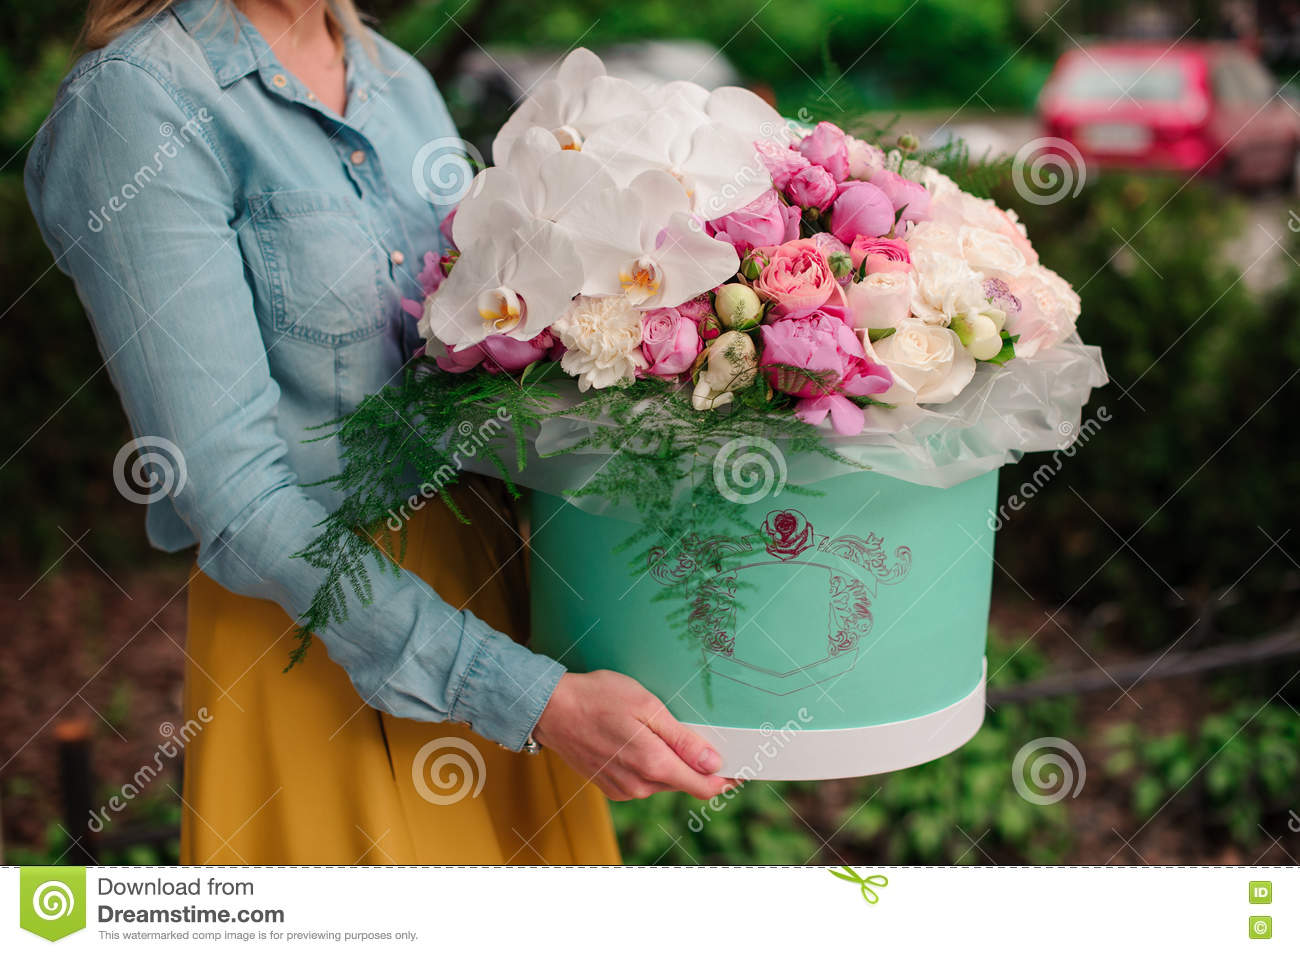 Girl Holding Beautiful Mix White And Pink Flower Bouquet In Round Box With Lid Stock Image Image Of Color Design 73365721